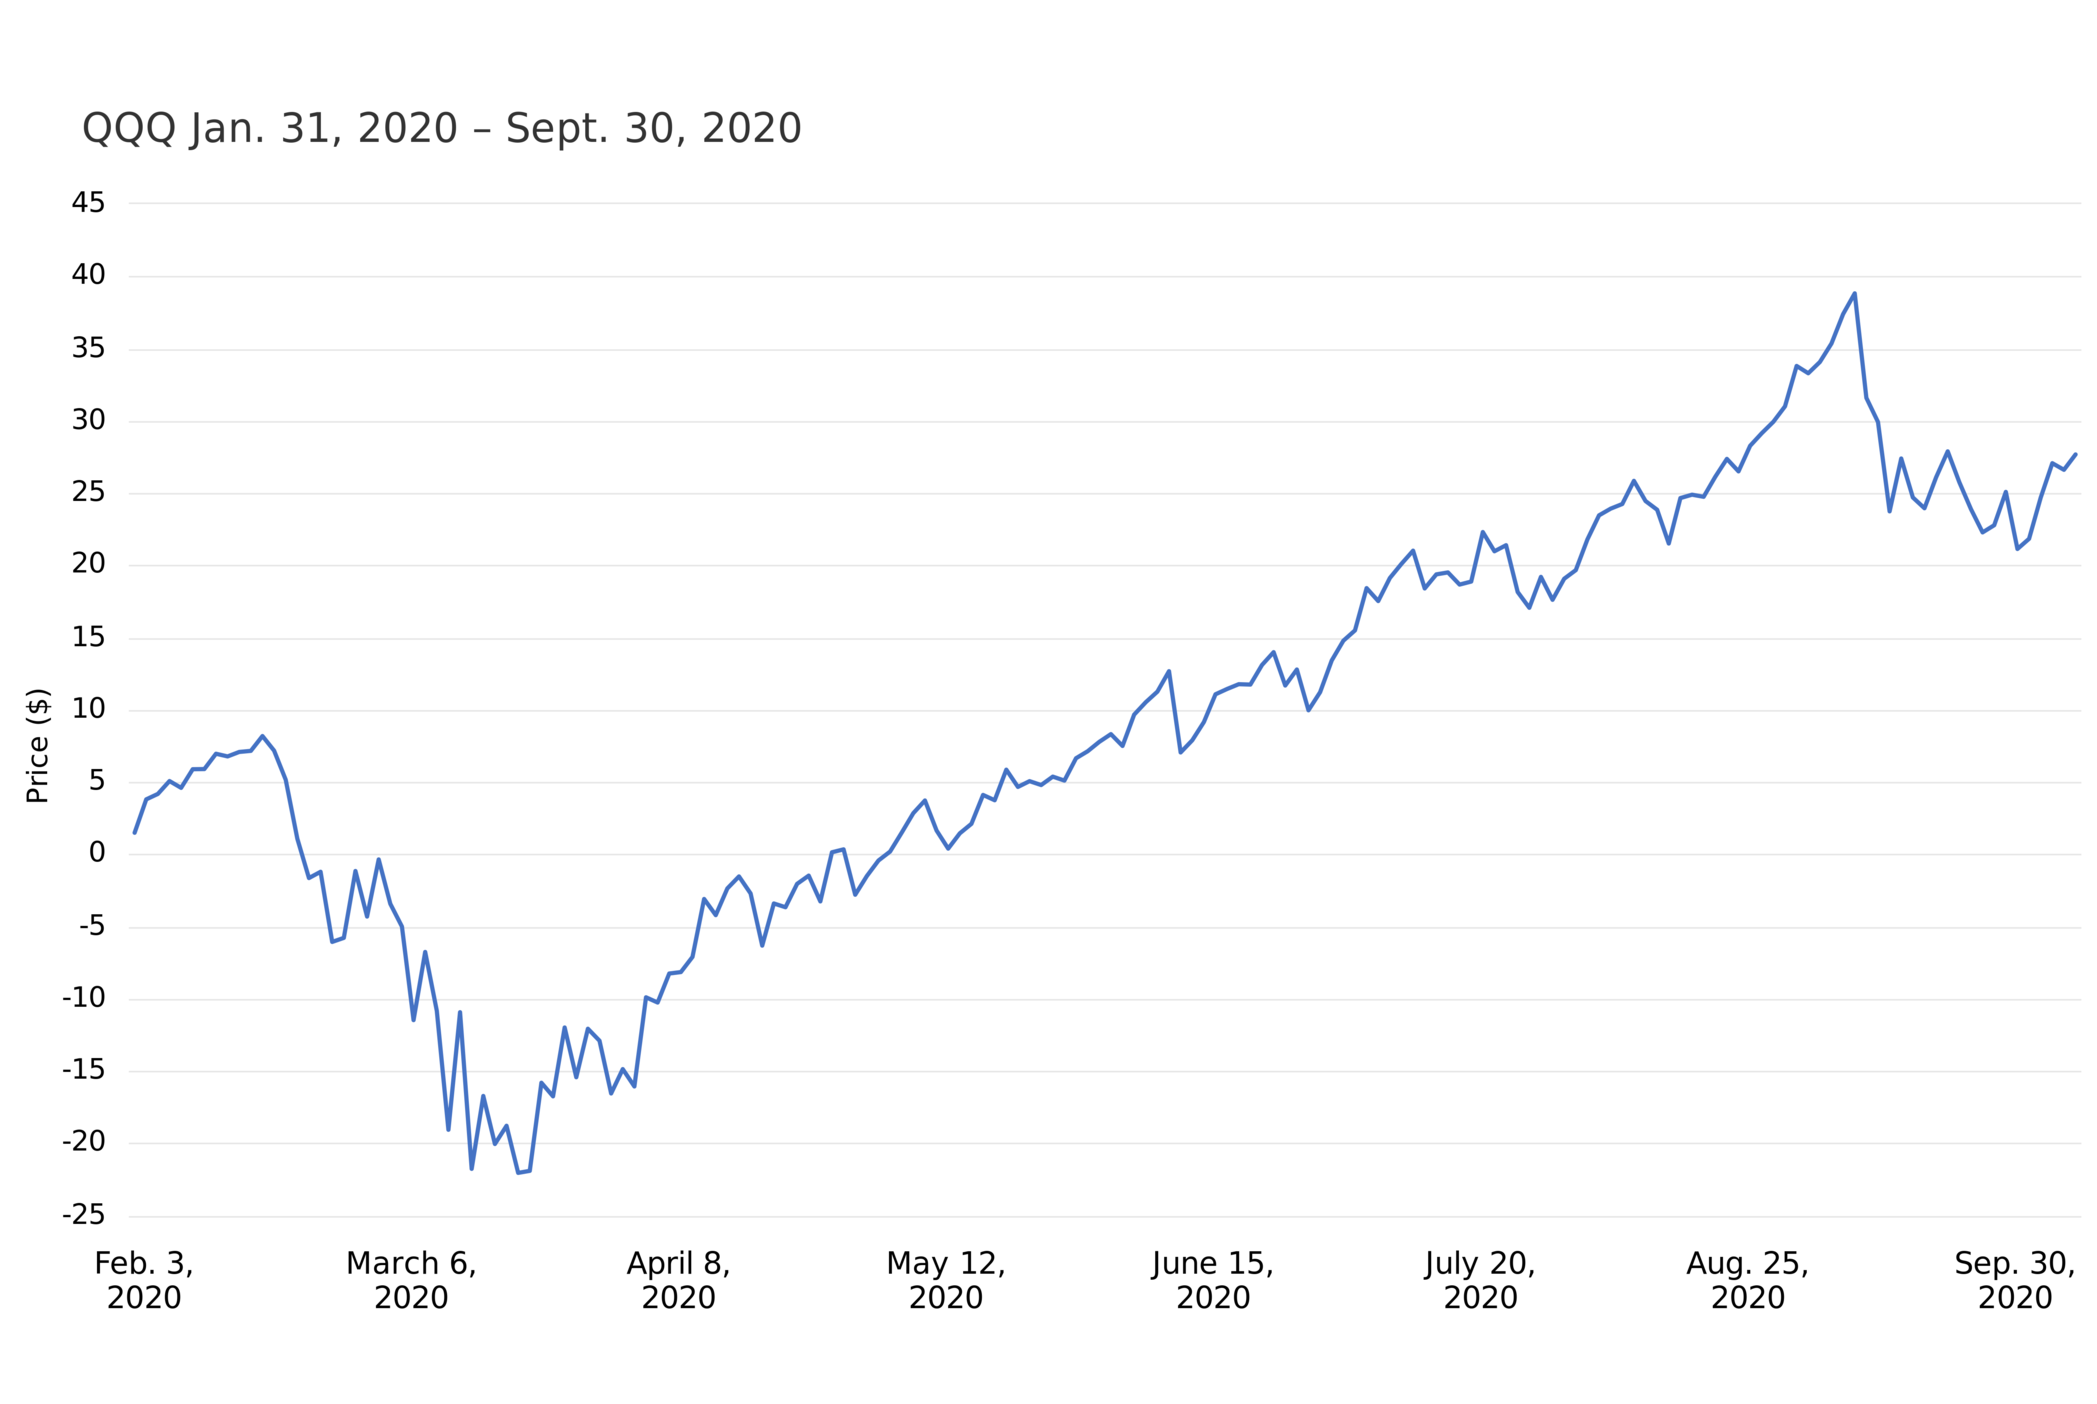 After a COVID-19 induced drawdown, QQQ rebounded to near pre-pandemic levels